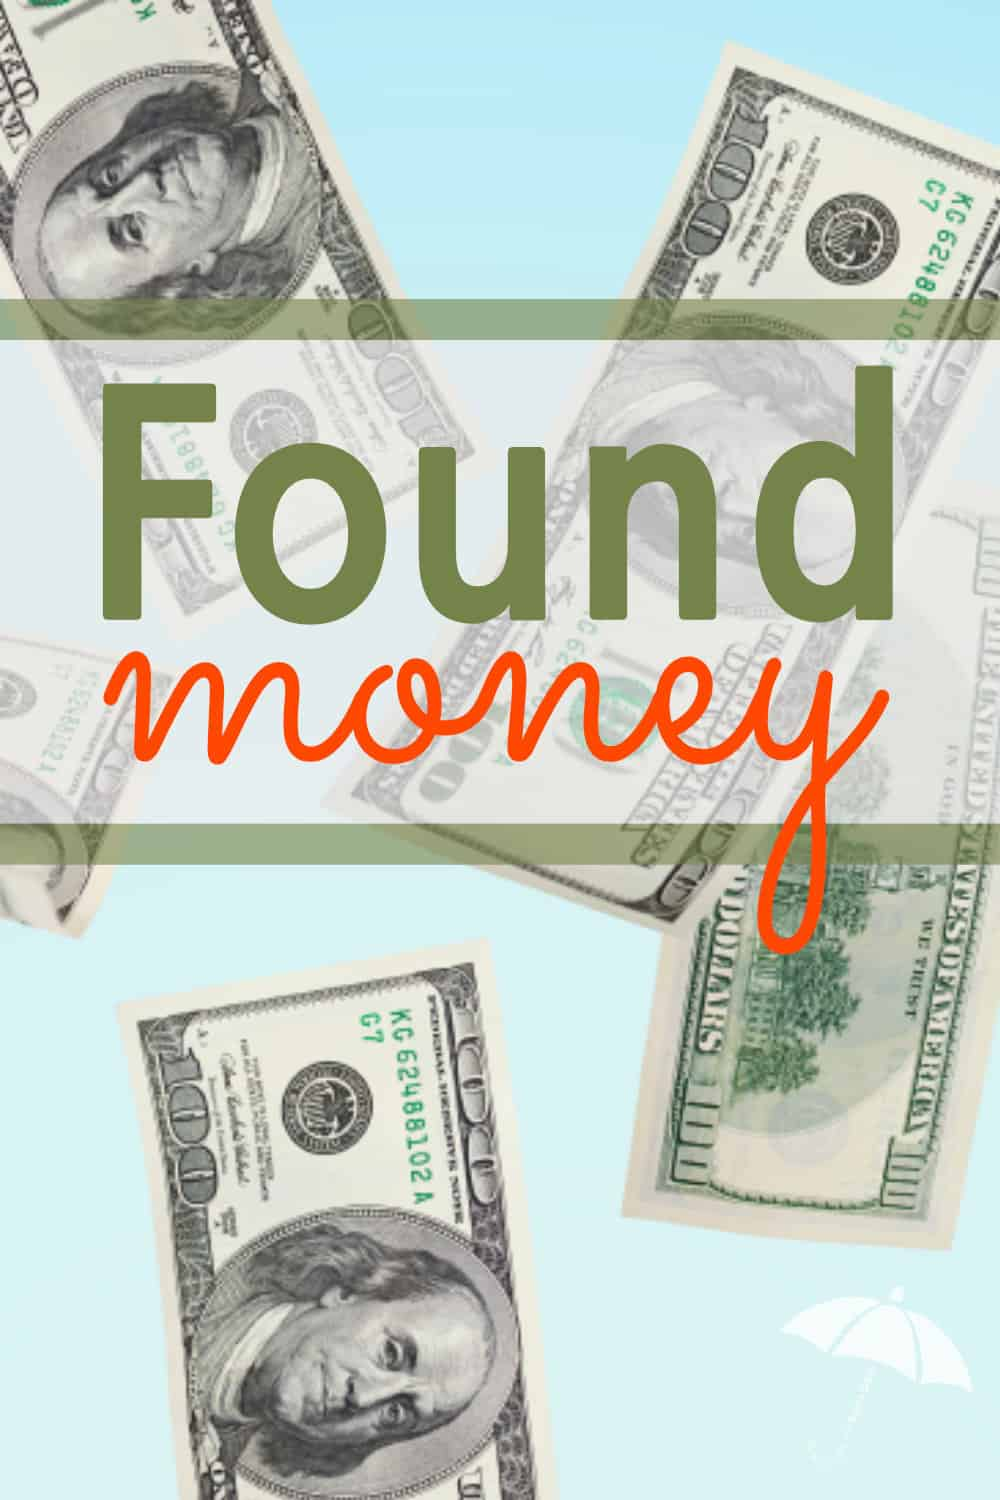 Hazel gasped and held up a wallet she was looking at in the shoe store. Inside was a crisp, $100 bill. It was found money! Exciting, right?